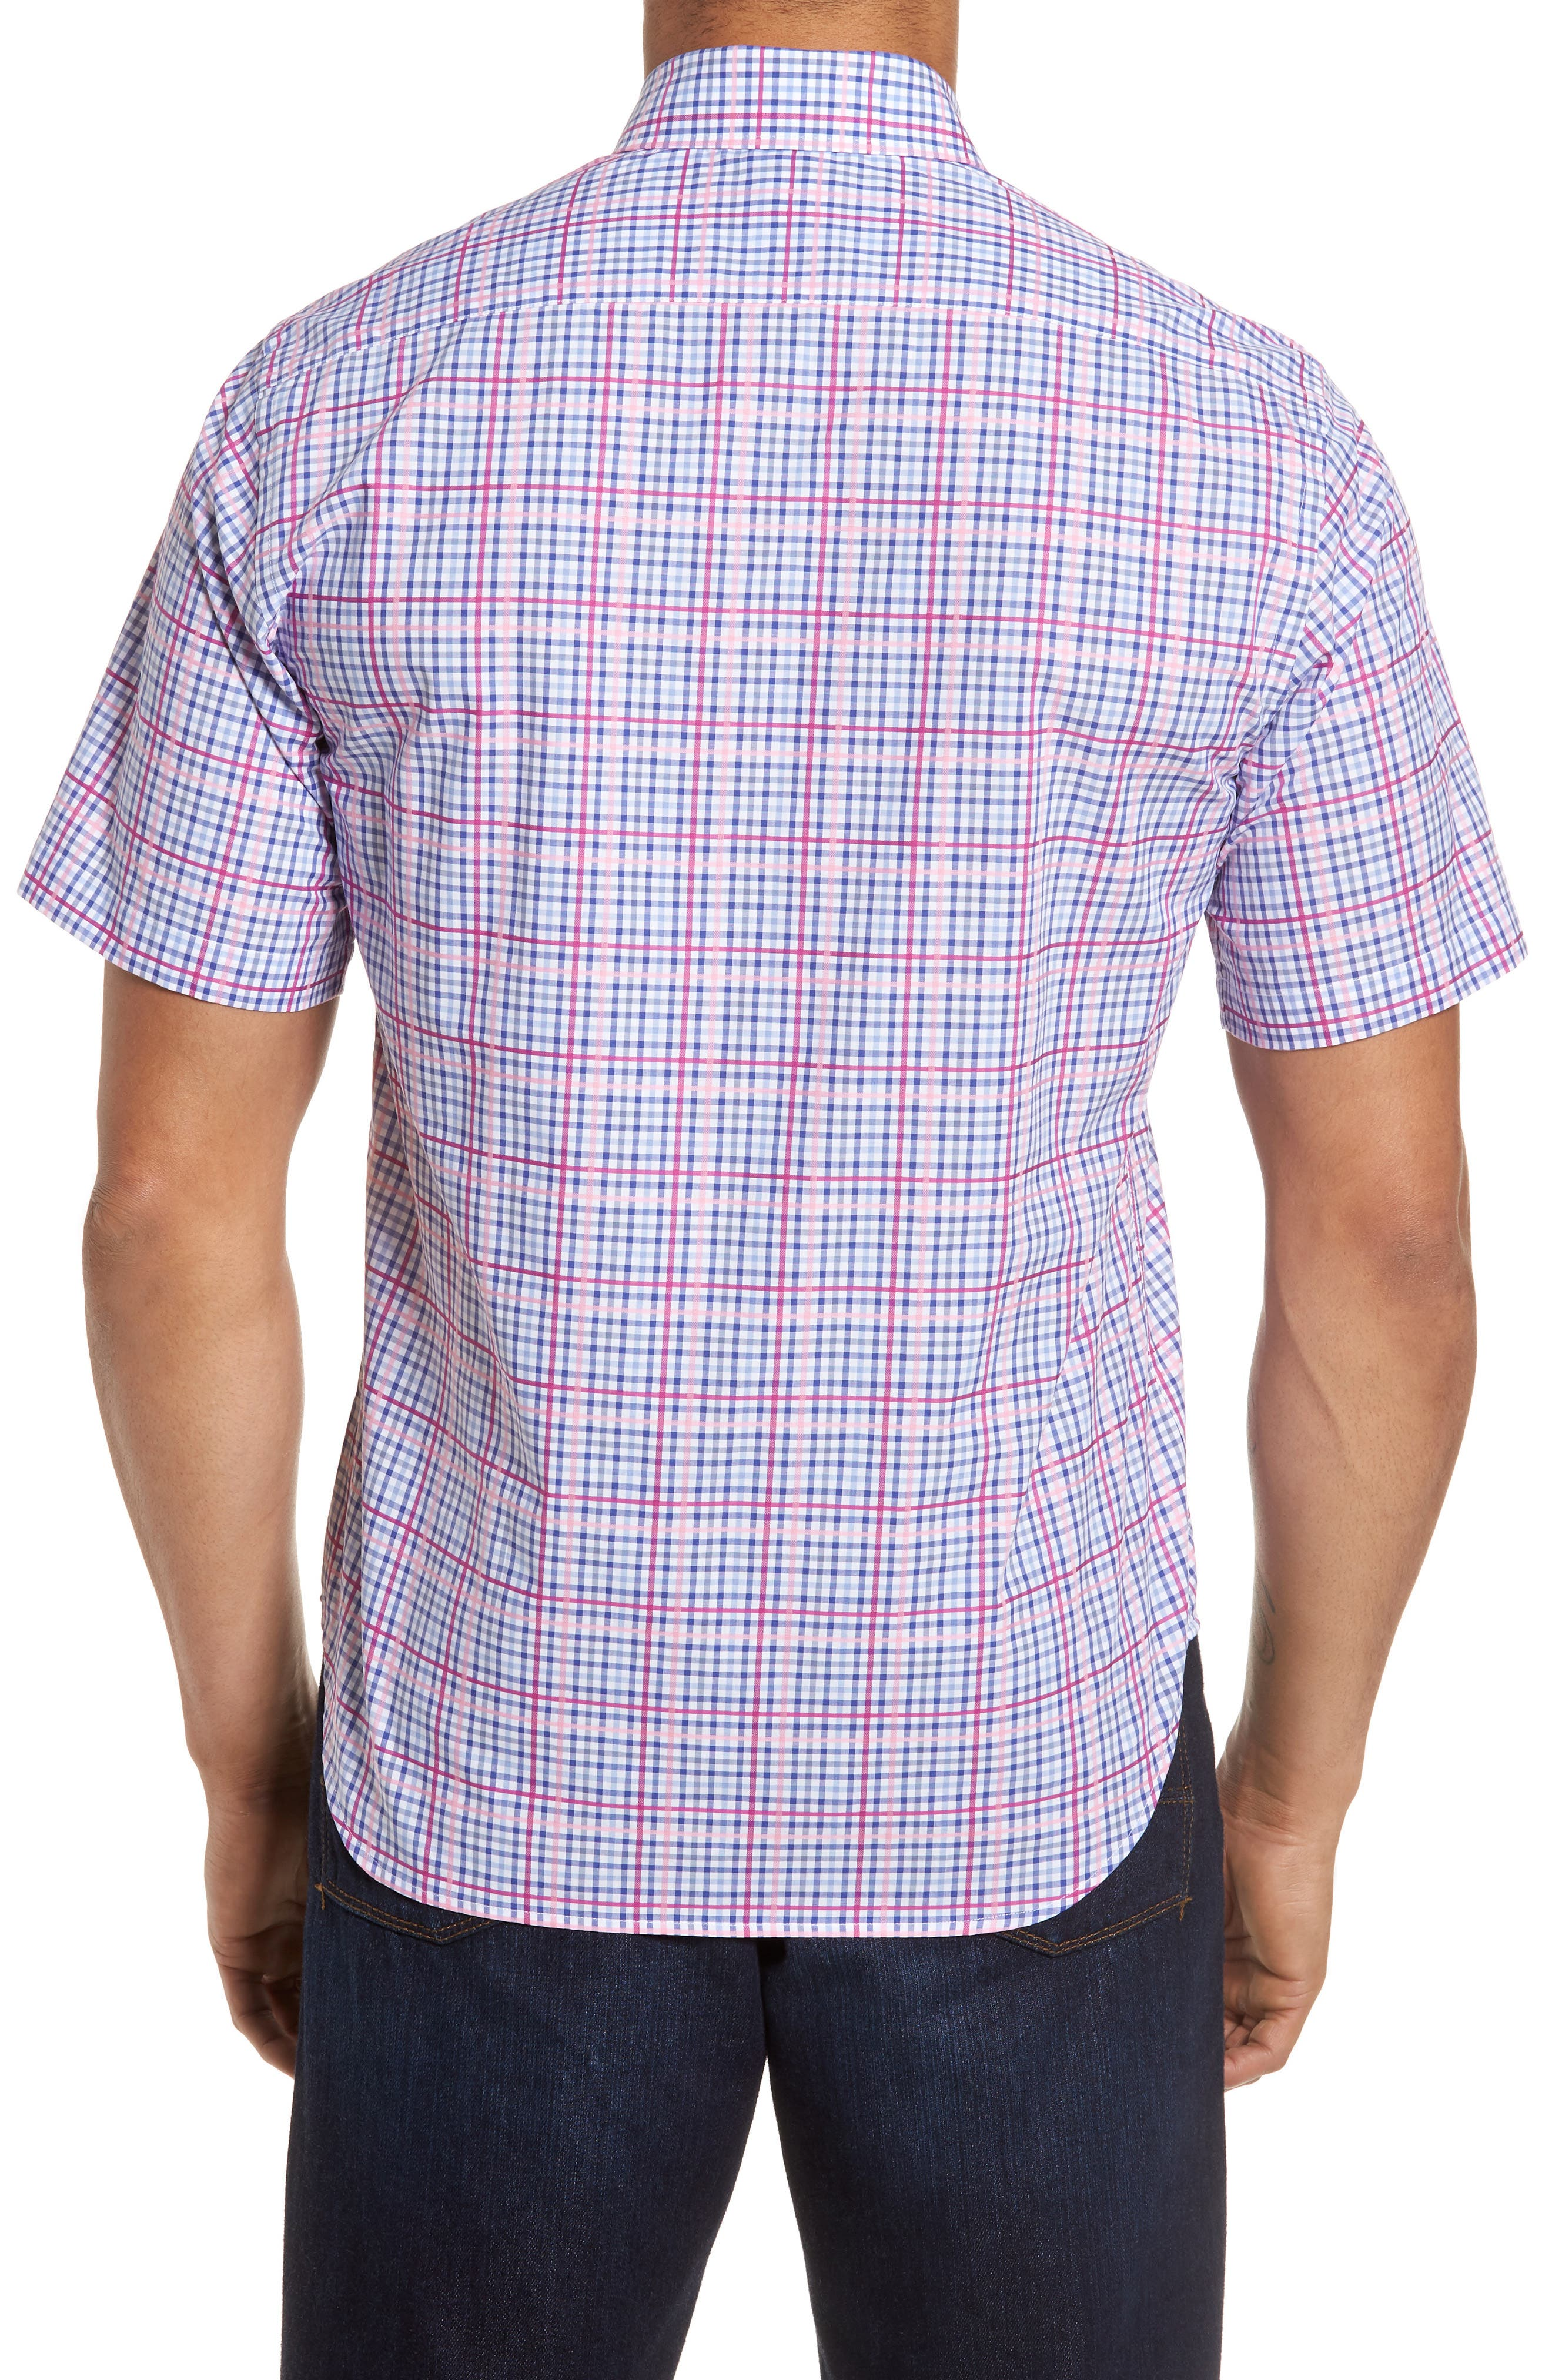 Ale Regular Fit Check Sport Shirt,                             Alternate thumbnail 2, color,                             650